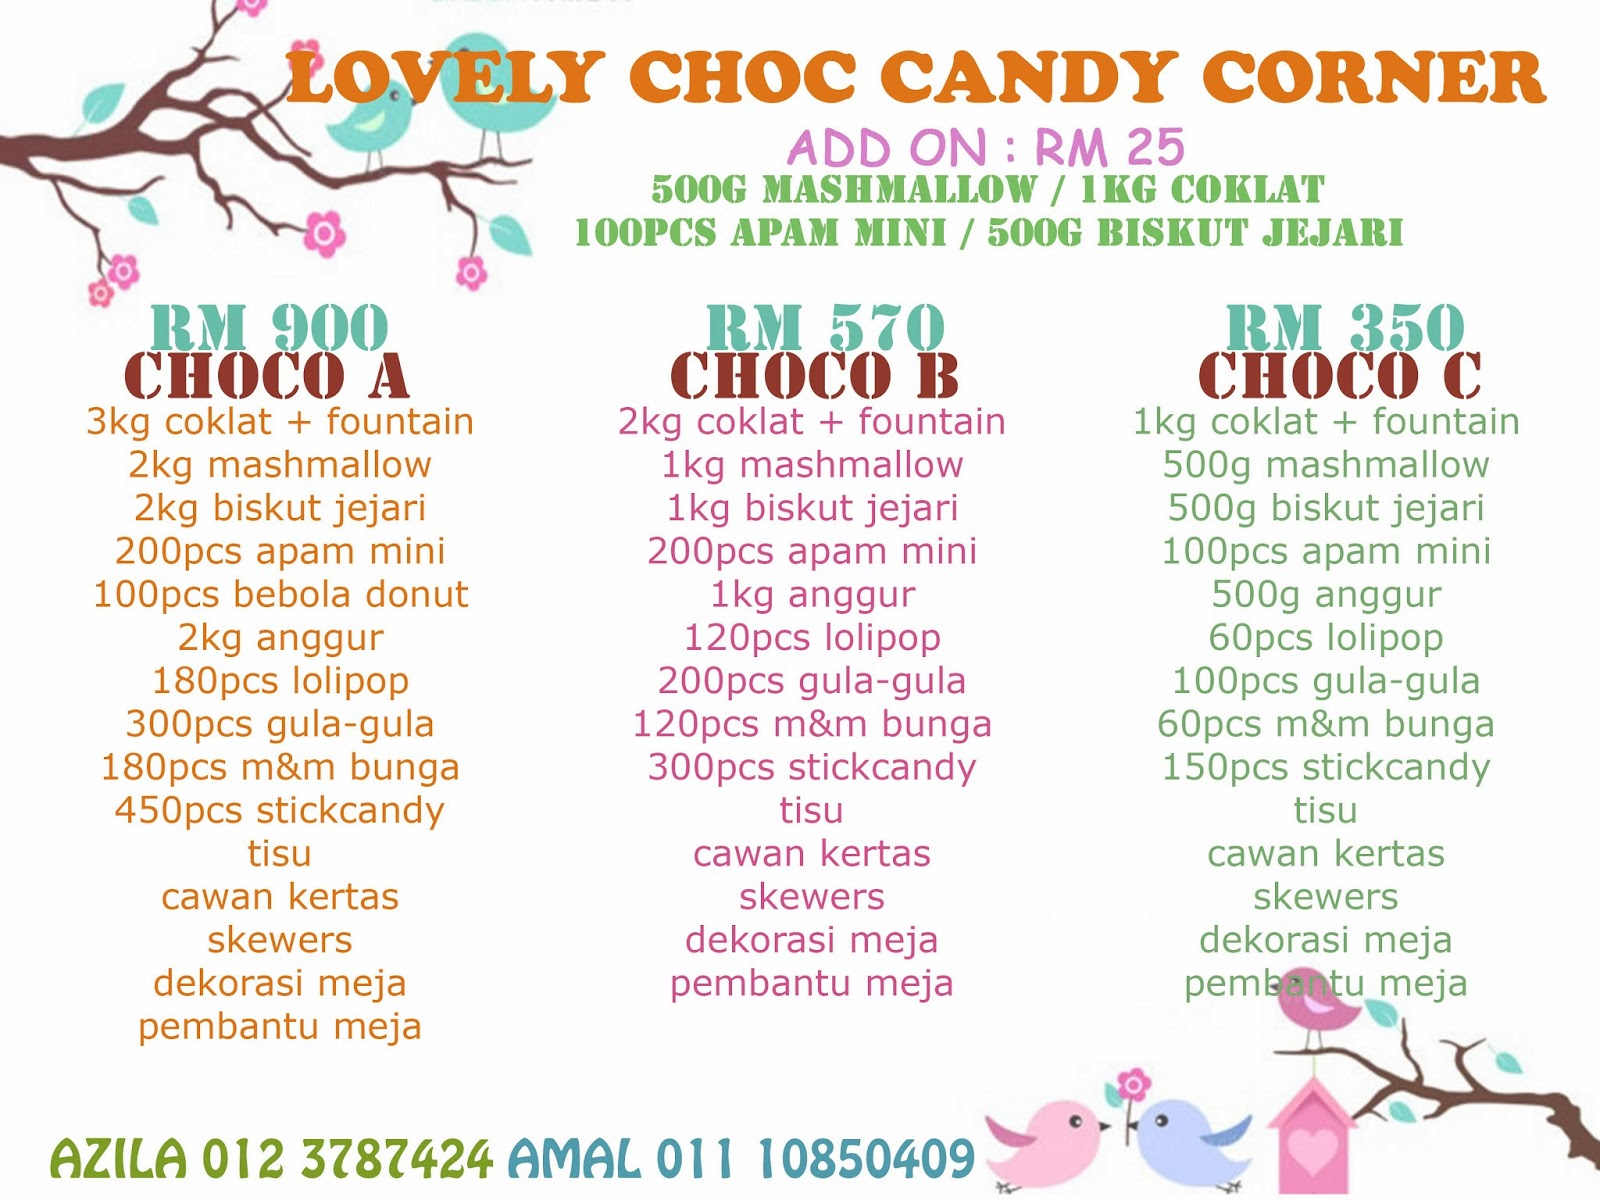 http://lukisancahayaphotog.blogspot.com/search/label/Candy%20Corner